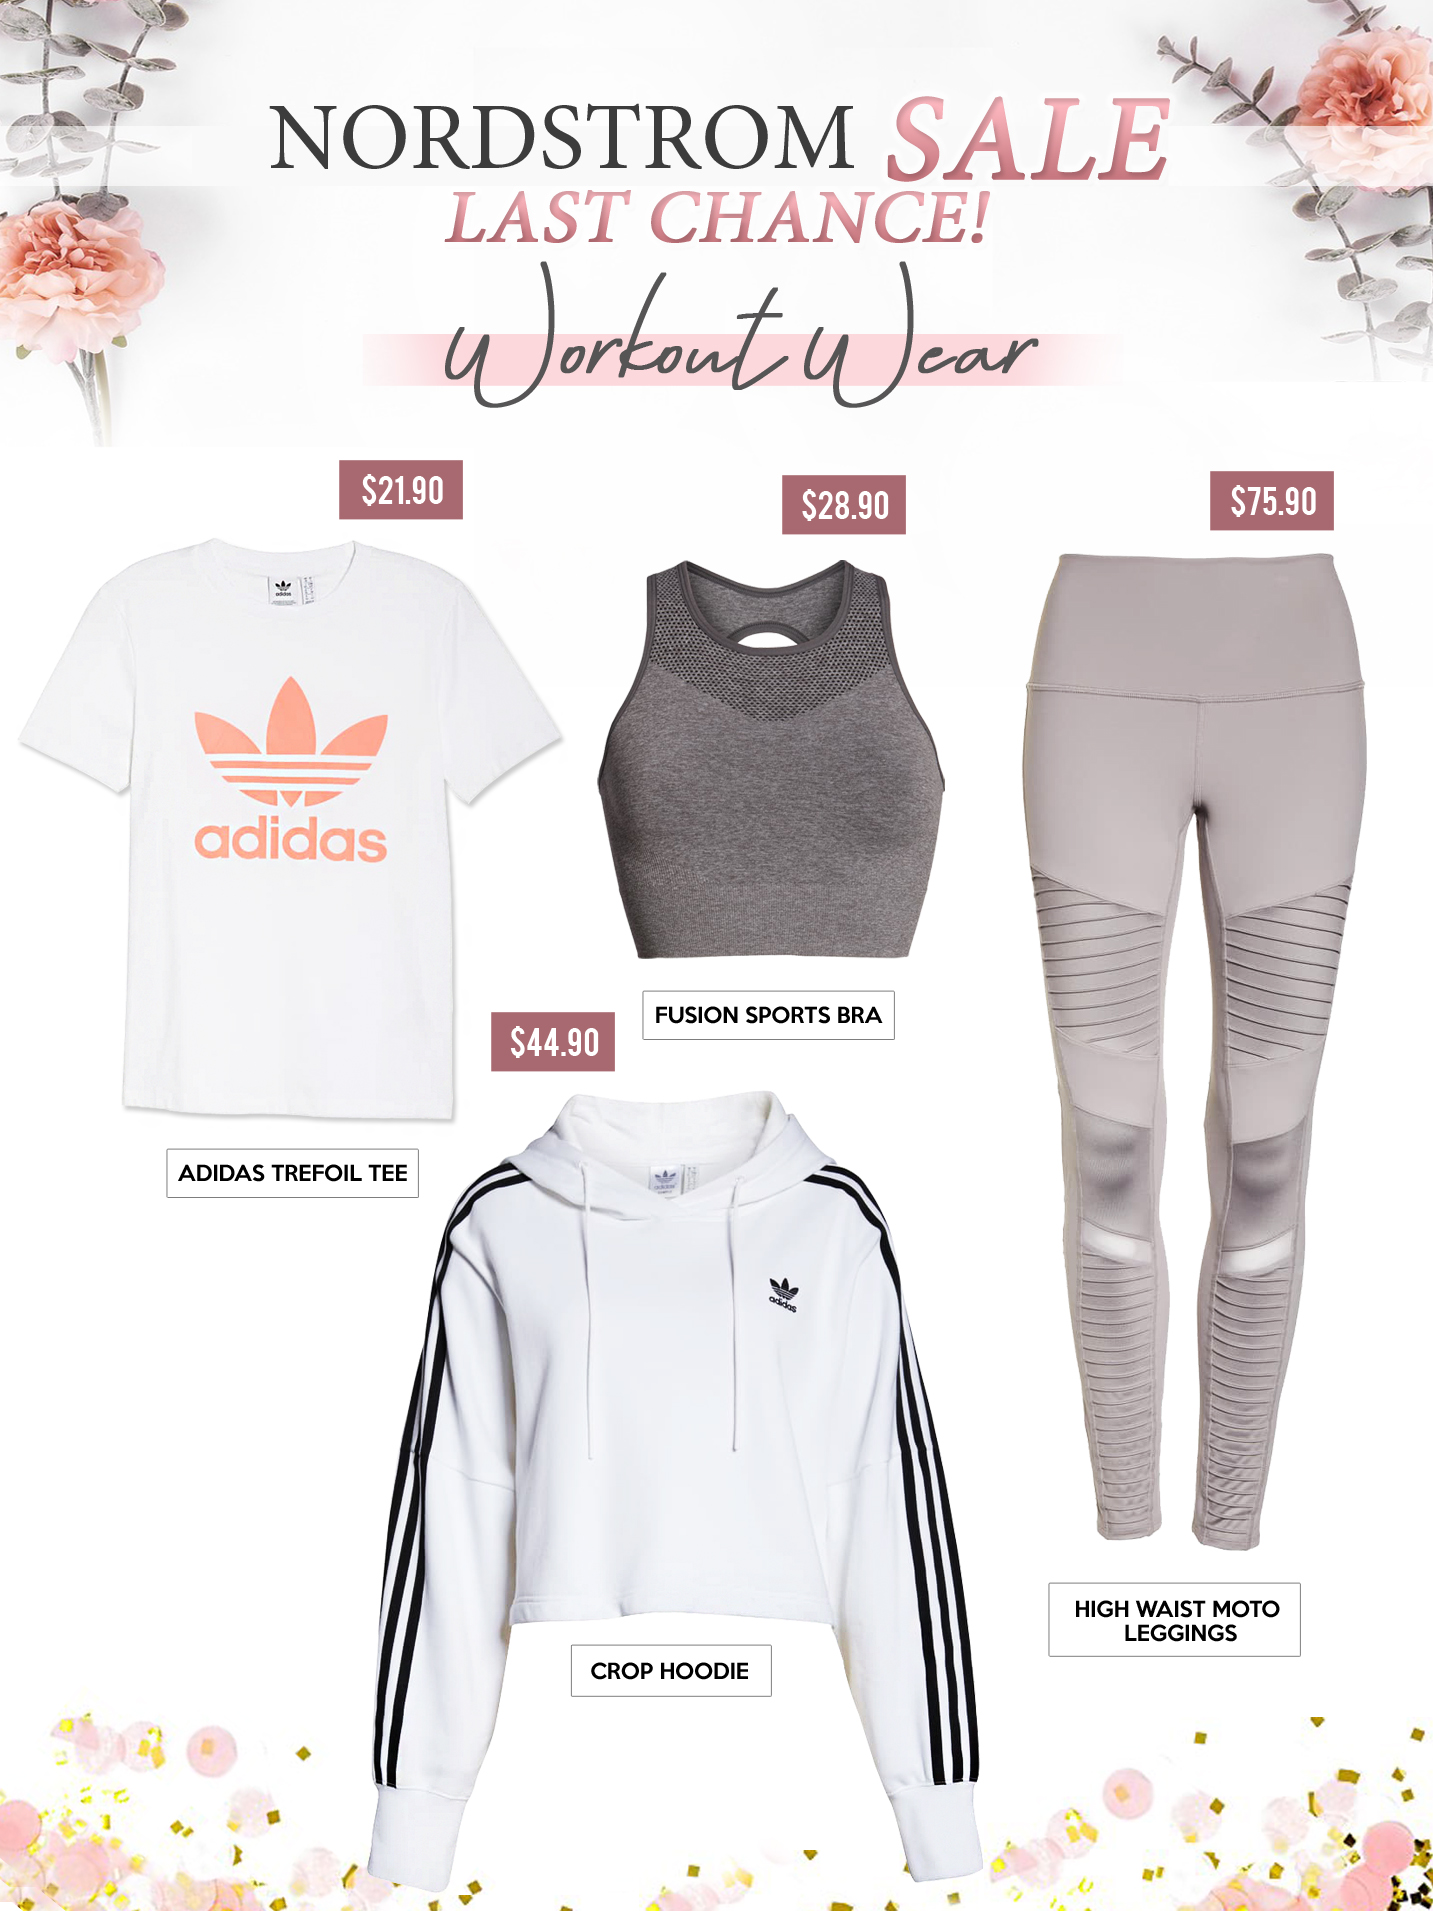 Gift Guides - WORK OUT WEAR - NORDSTROM SALE LAST CHANCE! - Copy